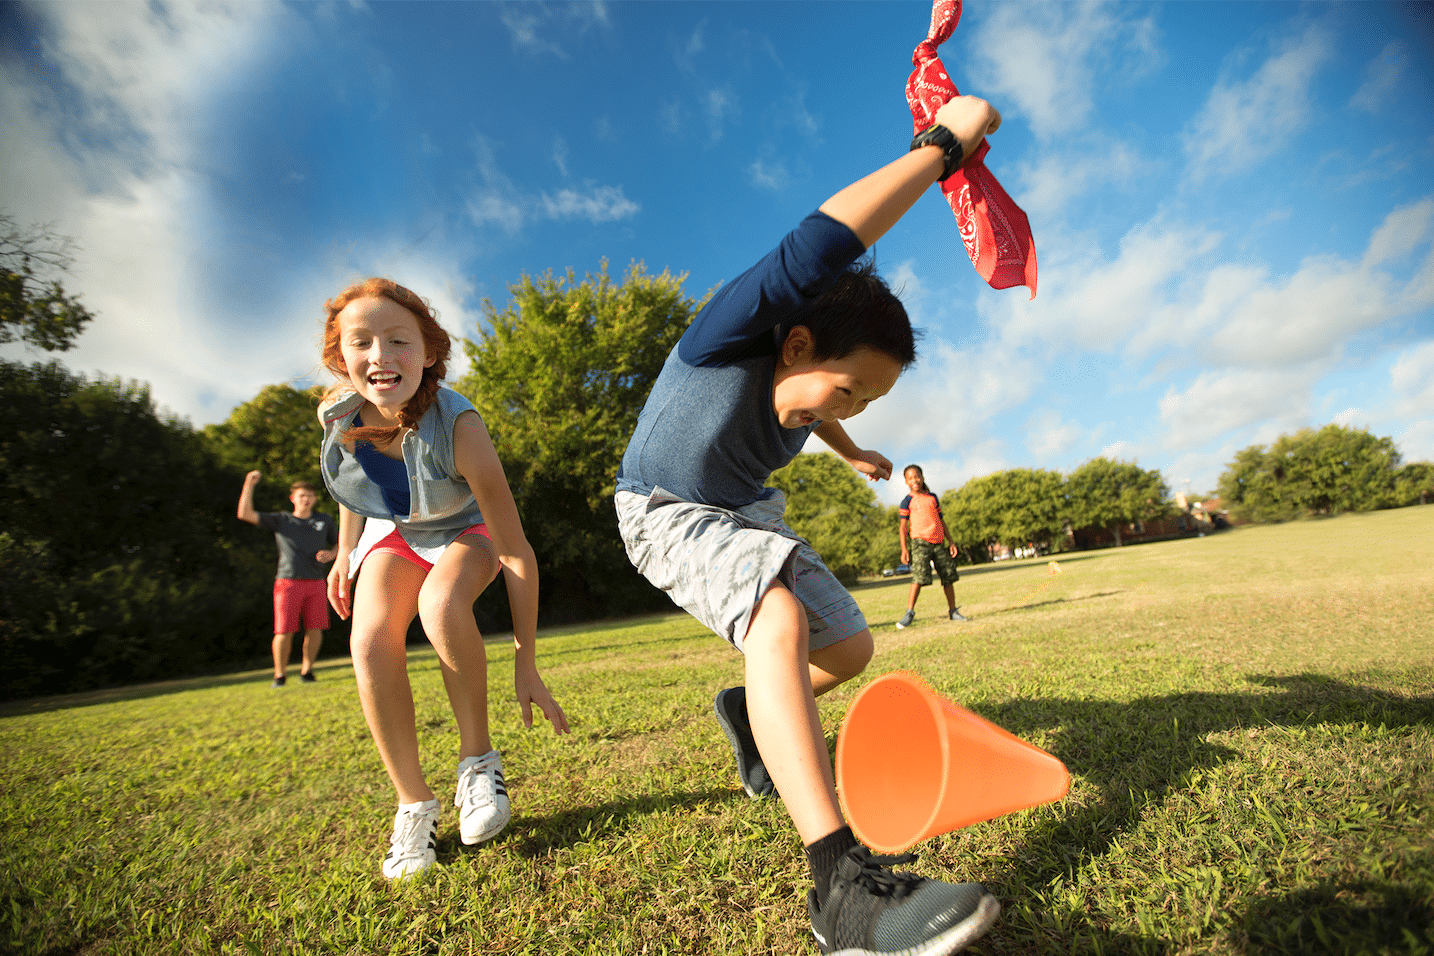 """<em>Check out and register for YMCA camps on-line, <a href=""""http://www.ymcabham.org/camp-cosby"""">www.ymcabham.org/camp-cosby</a> and <a href=""""http://www.ymcabham.org/bestsummer"""">www.ymcabham.org/bestsummer</a> for Summer Cay Camps. YMCA Member's receive a $50 tuition discount to Camp Cosby.</em>"""